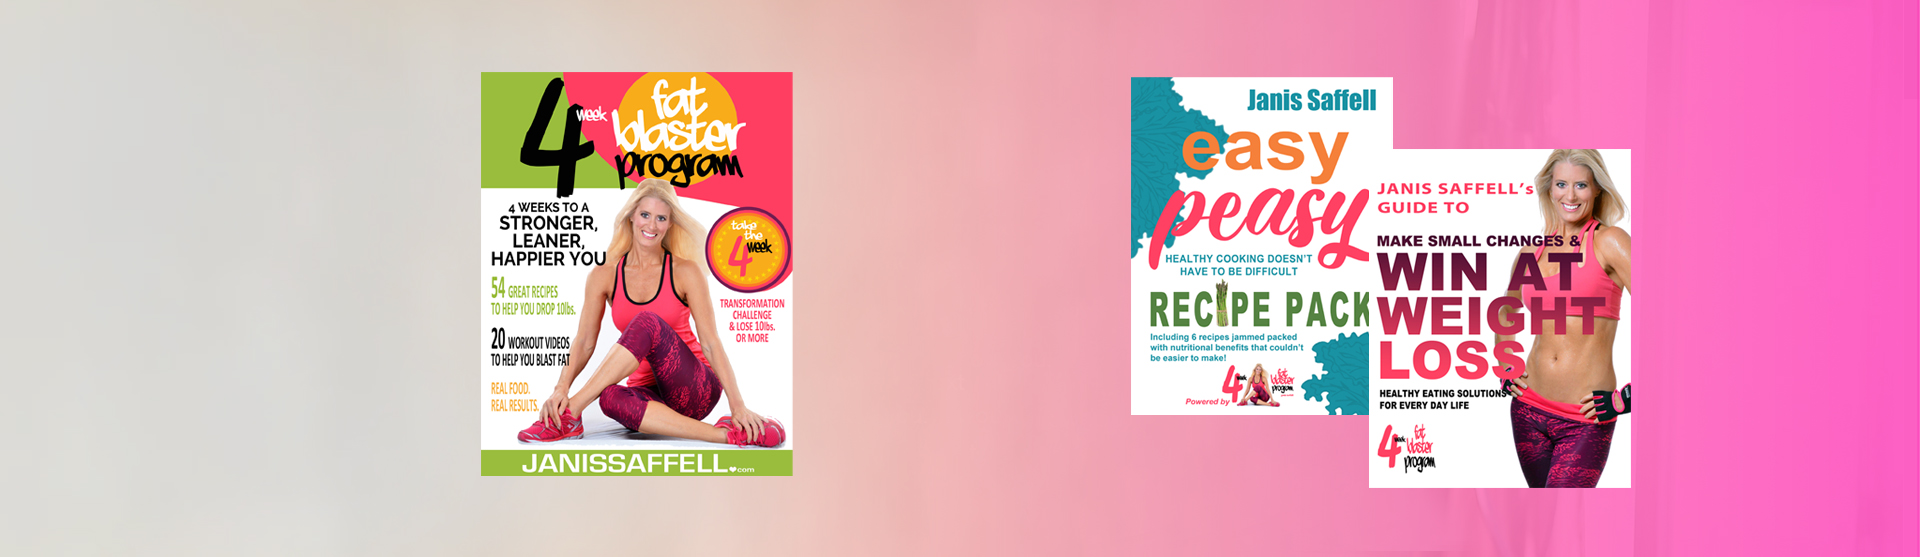 Janis Saffell 4 Week Fat Blaster Book, Easy Peasy Recipe Pack, Make Small Changes & Win At Weight Loss